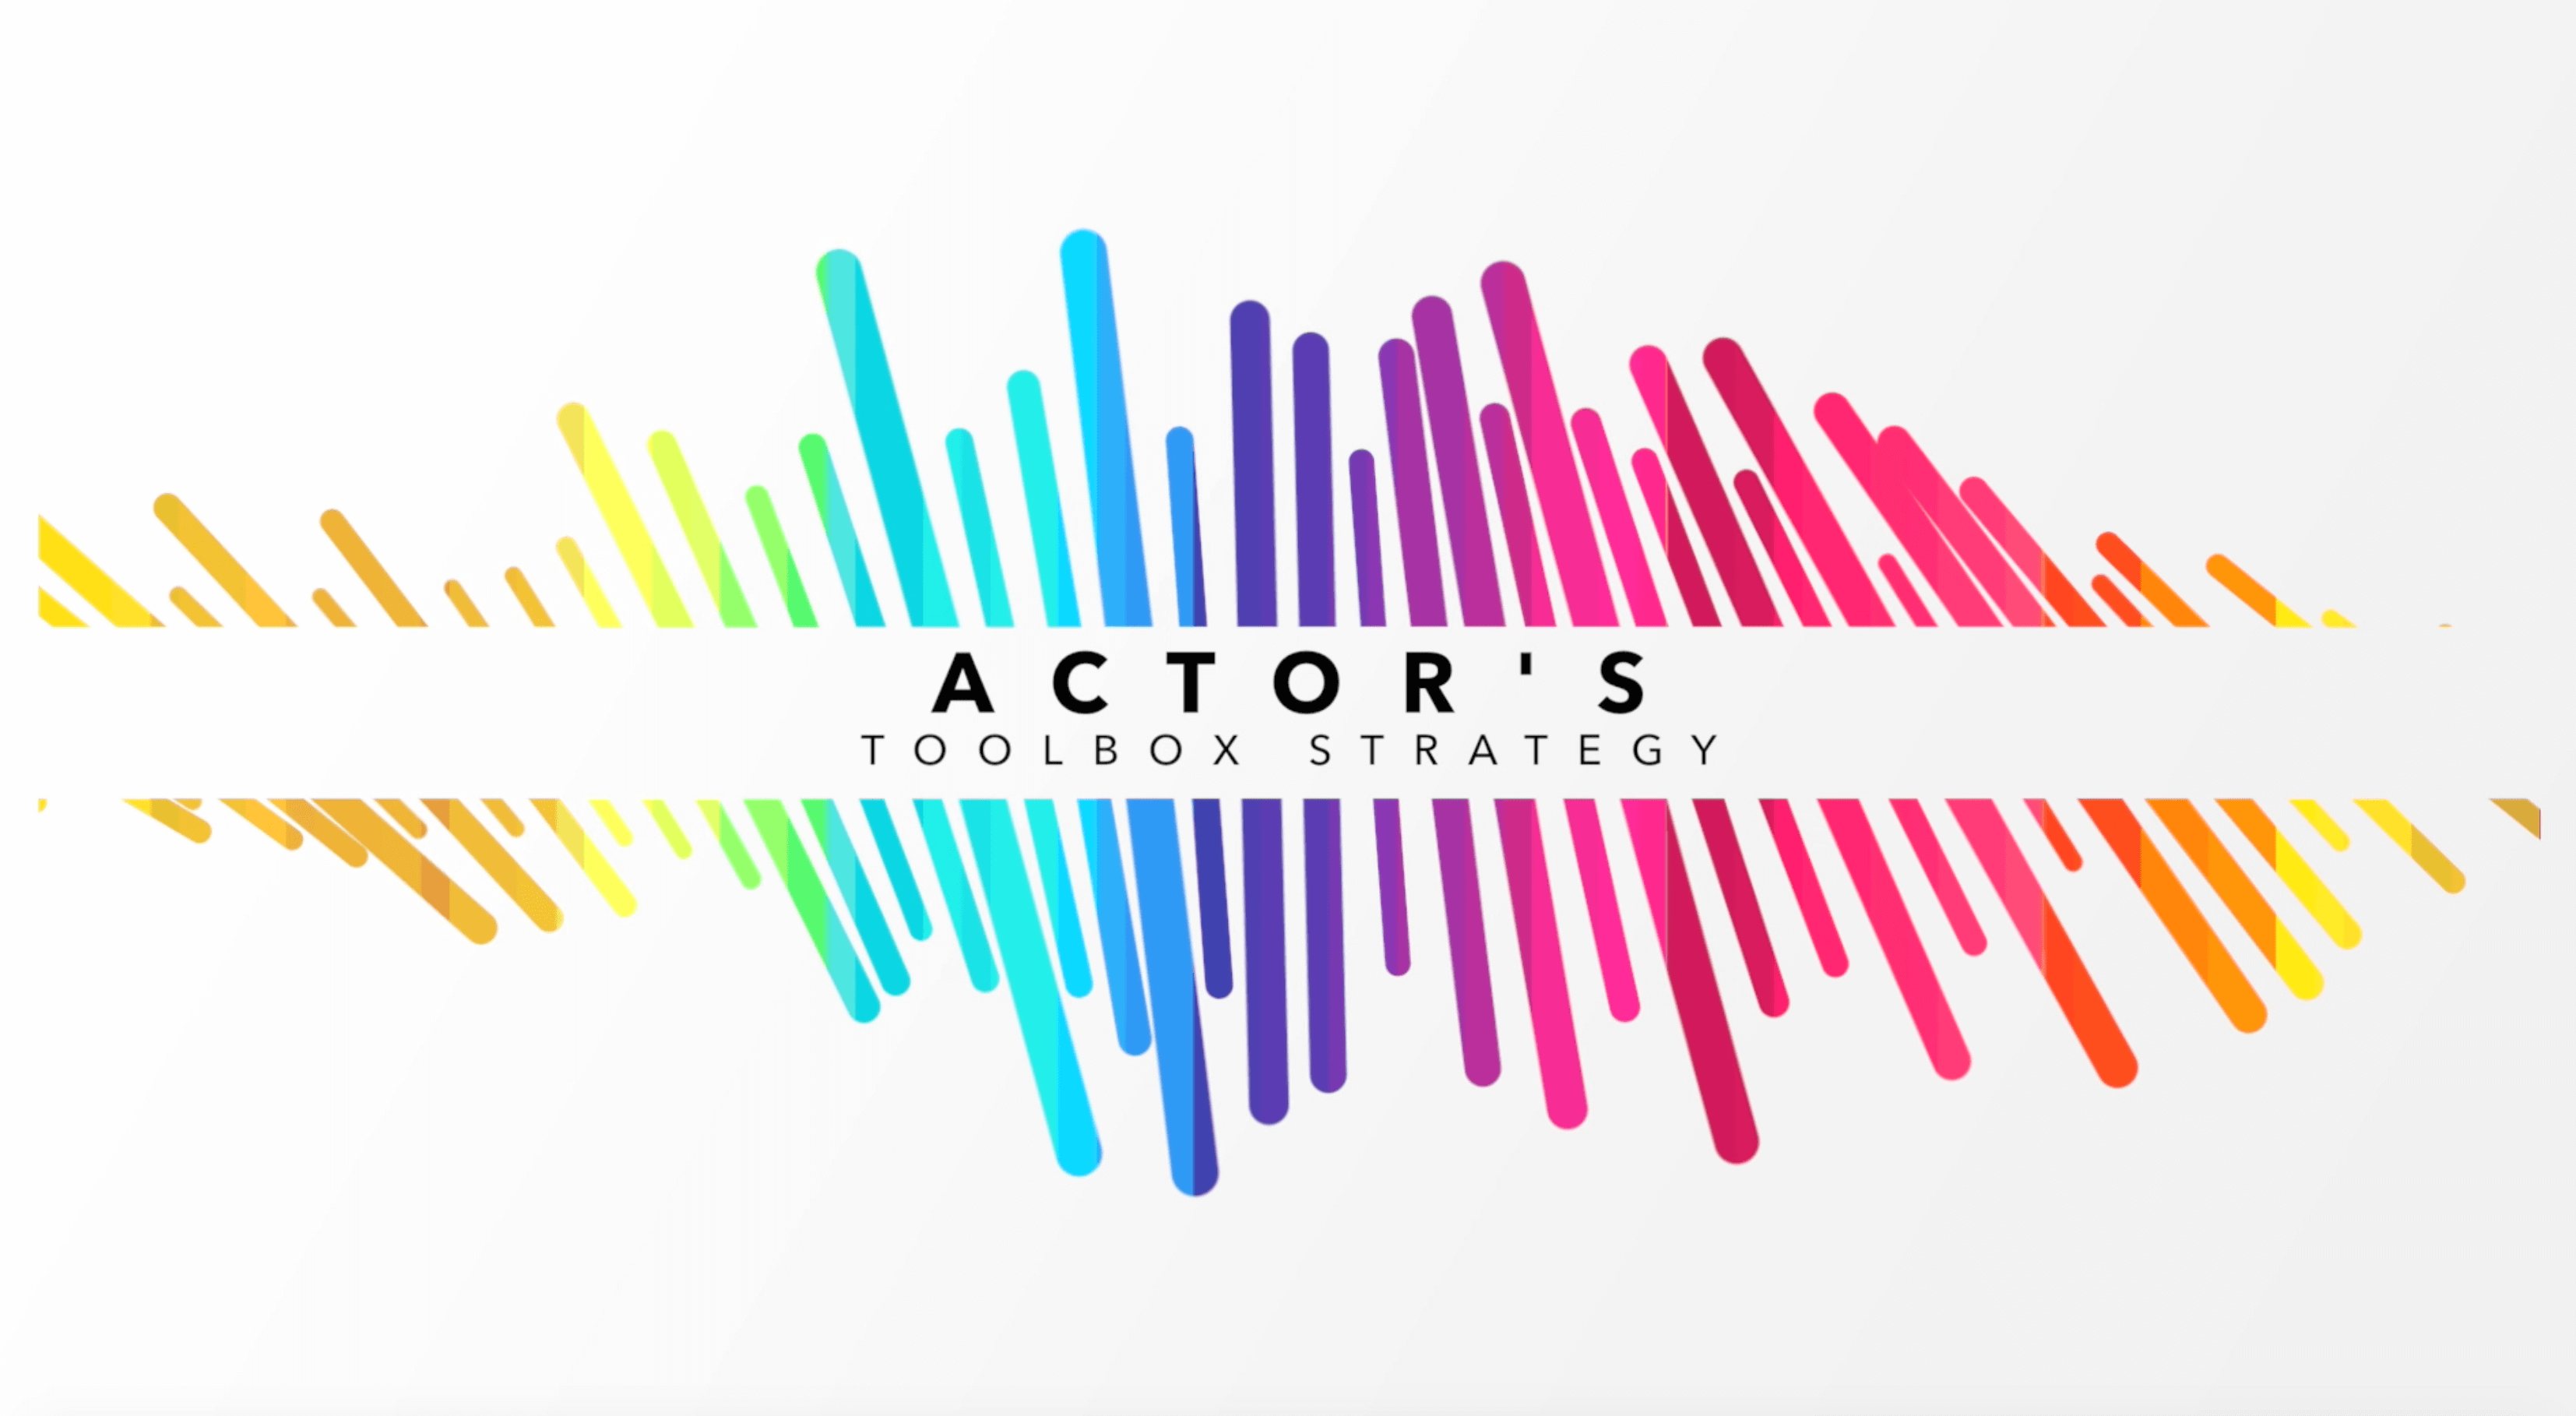 actors toolbox strategy video